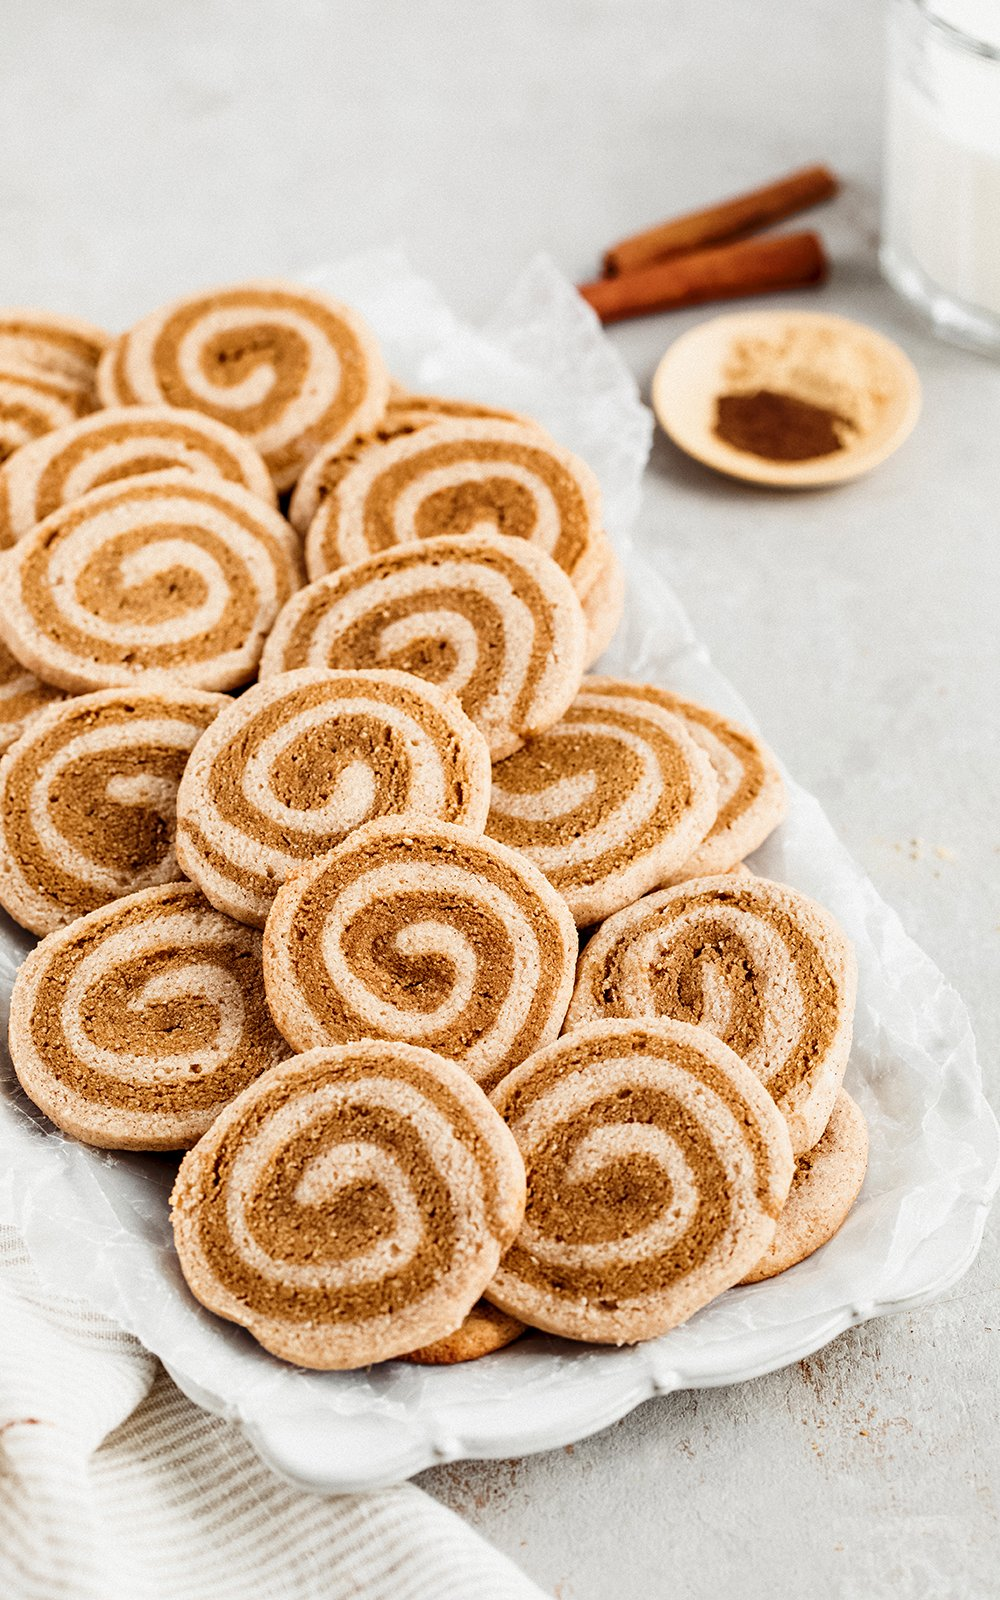 The cutest grain free gingerdoodle cookies make with a swirl of snickerdoodle cookie dough and gingerbread cookie dough. These festive cookies are perfectly sweet, gluten free, and great for the holidays!